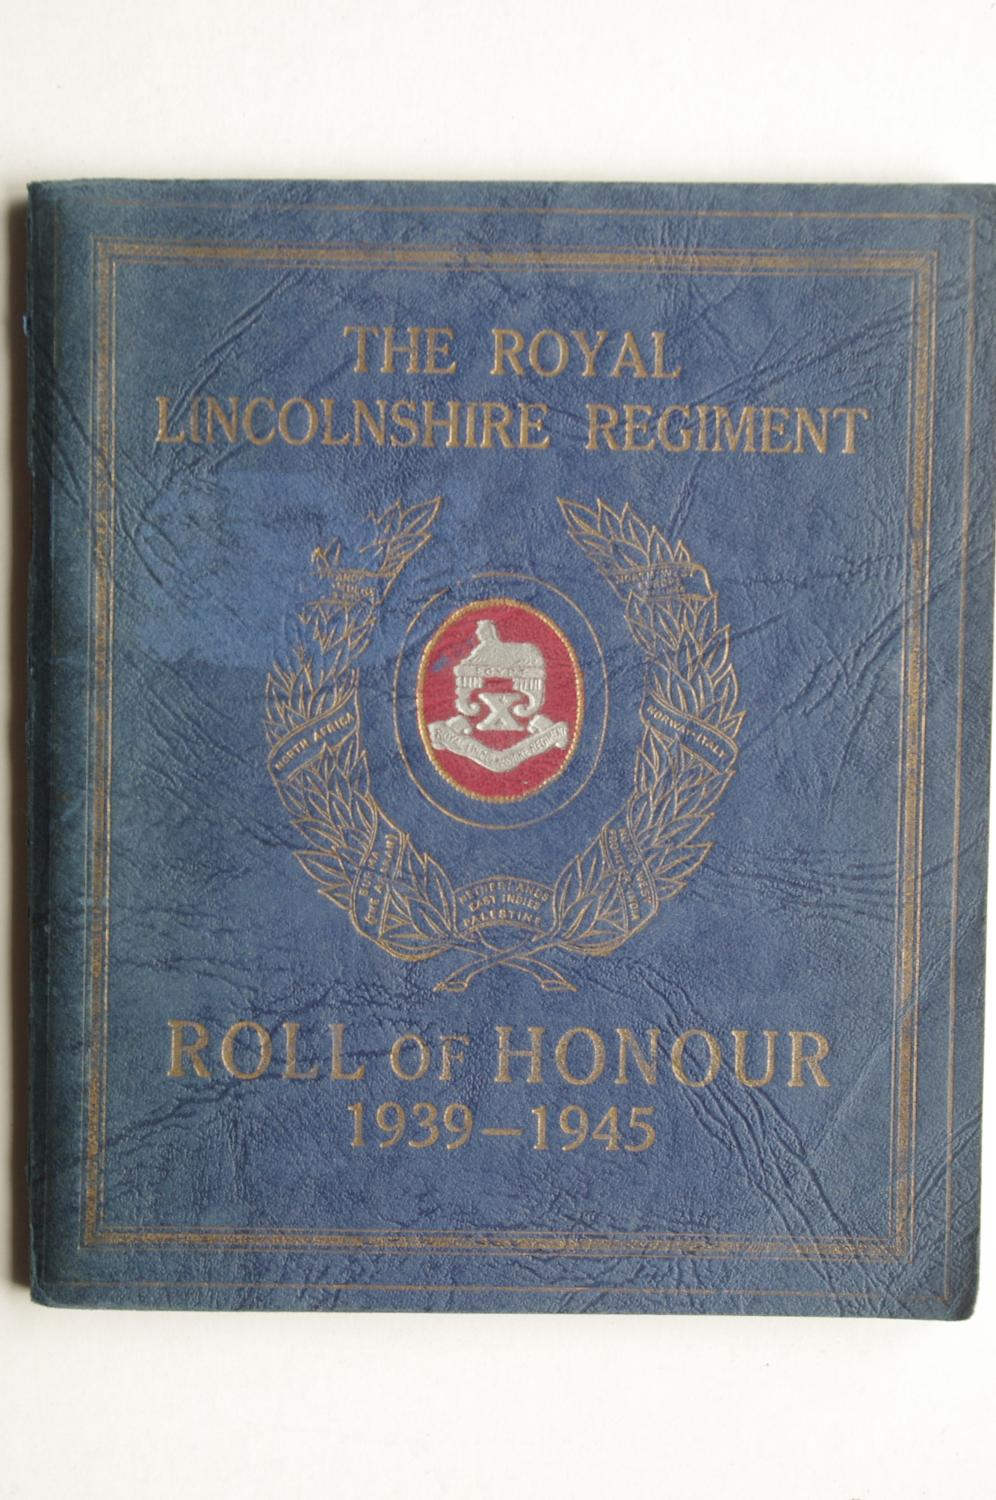 The Royal Lincolshire Regiment Roll of Honour 1939-1945, 1949  (collection P. Reinders)